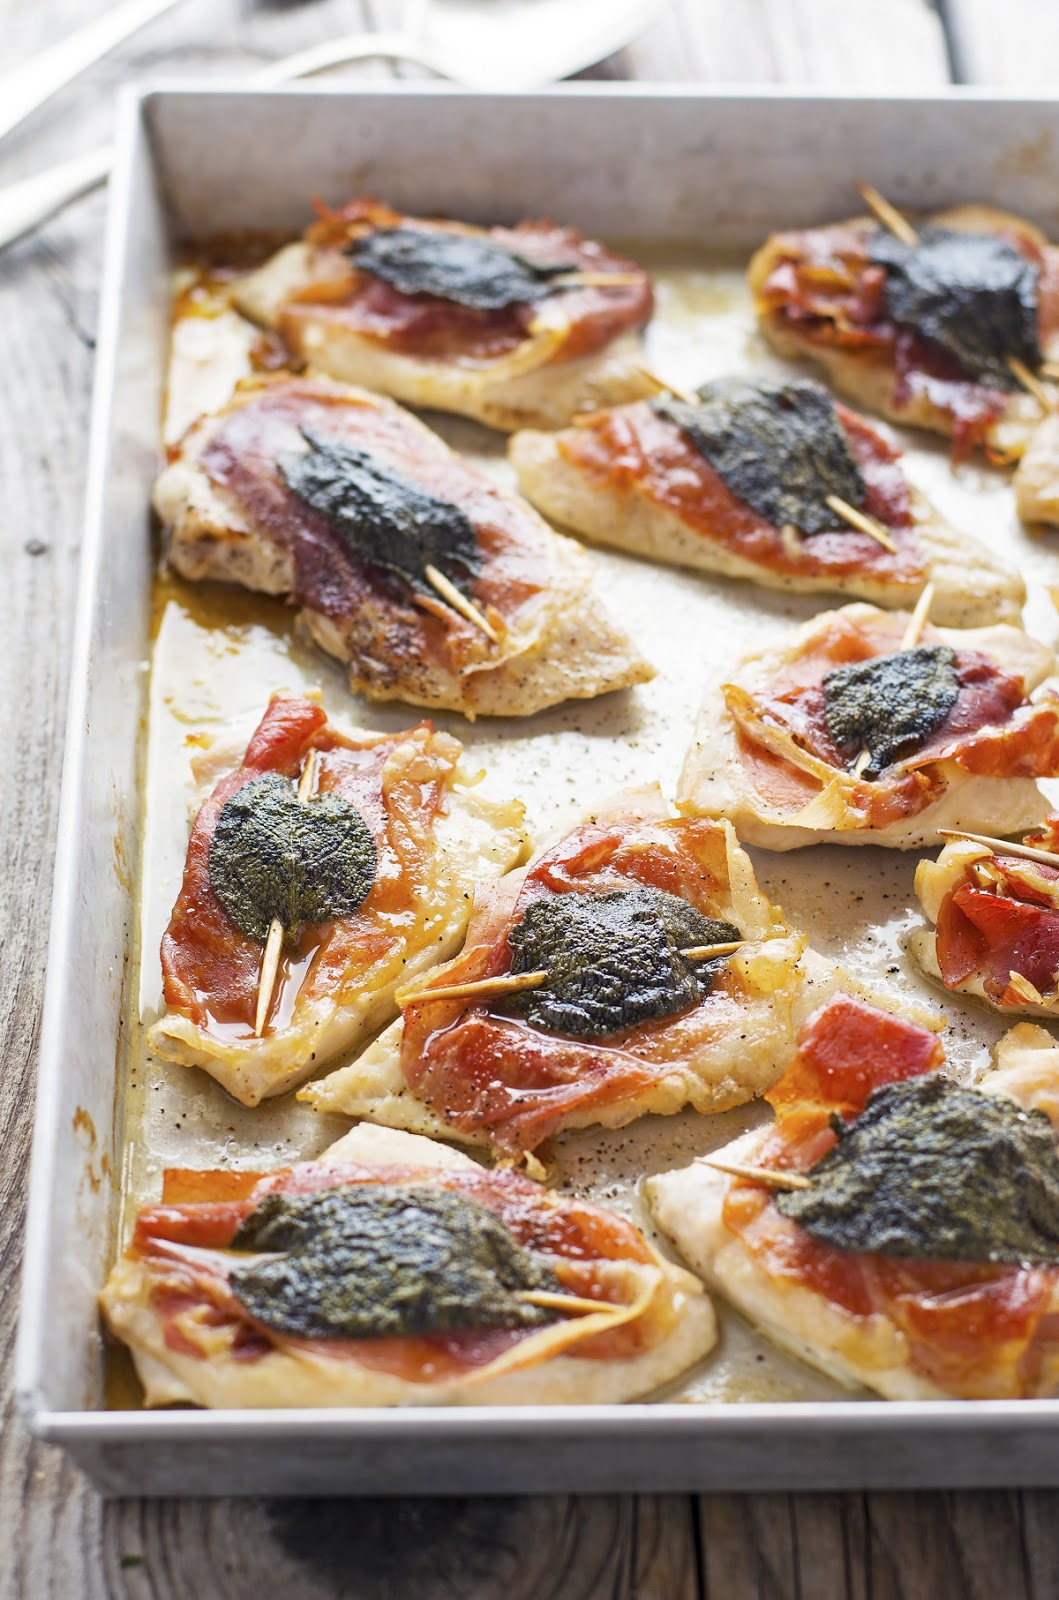 Pan Sheet Chicken Saltimbocca